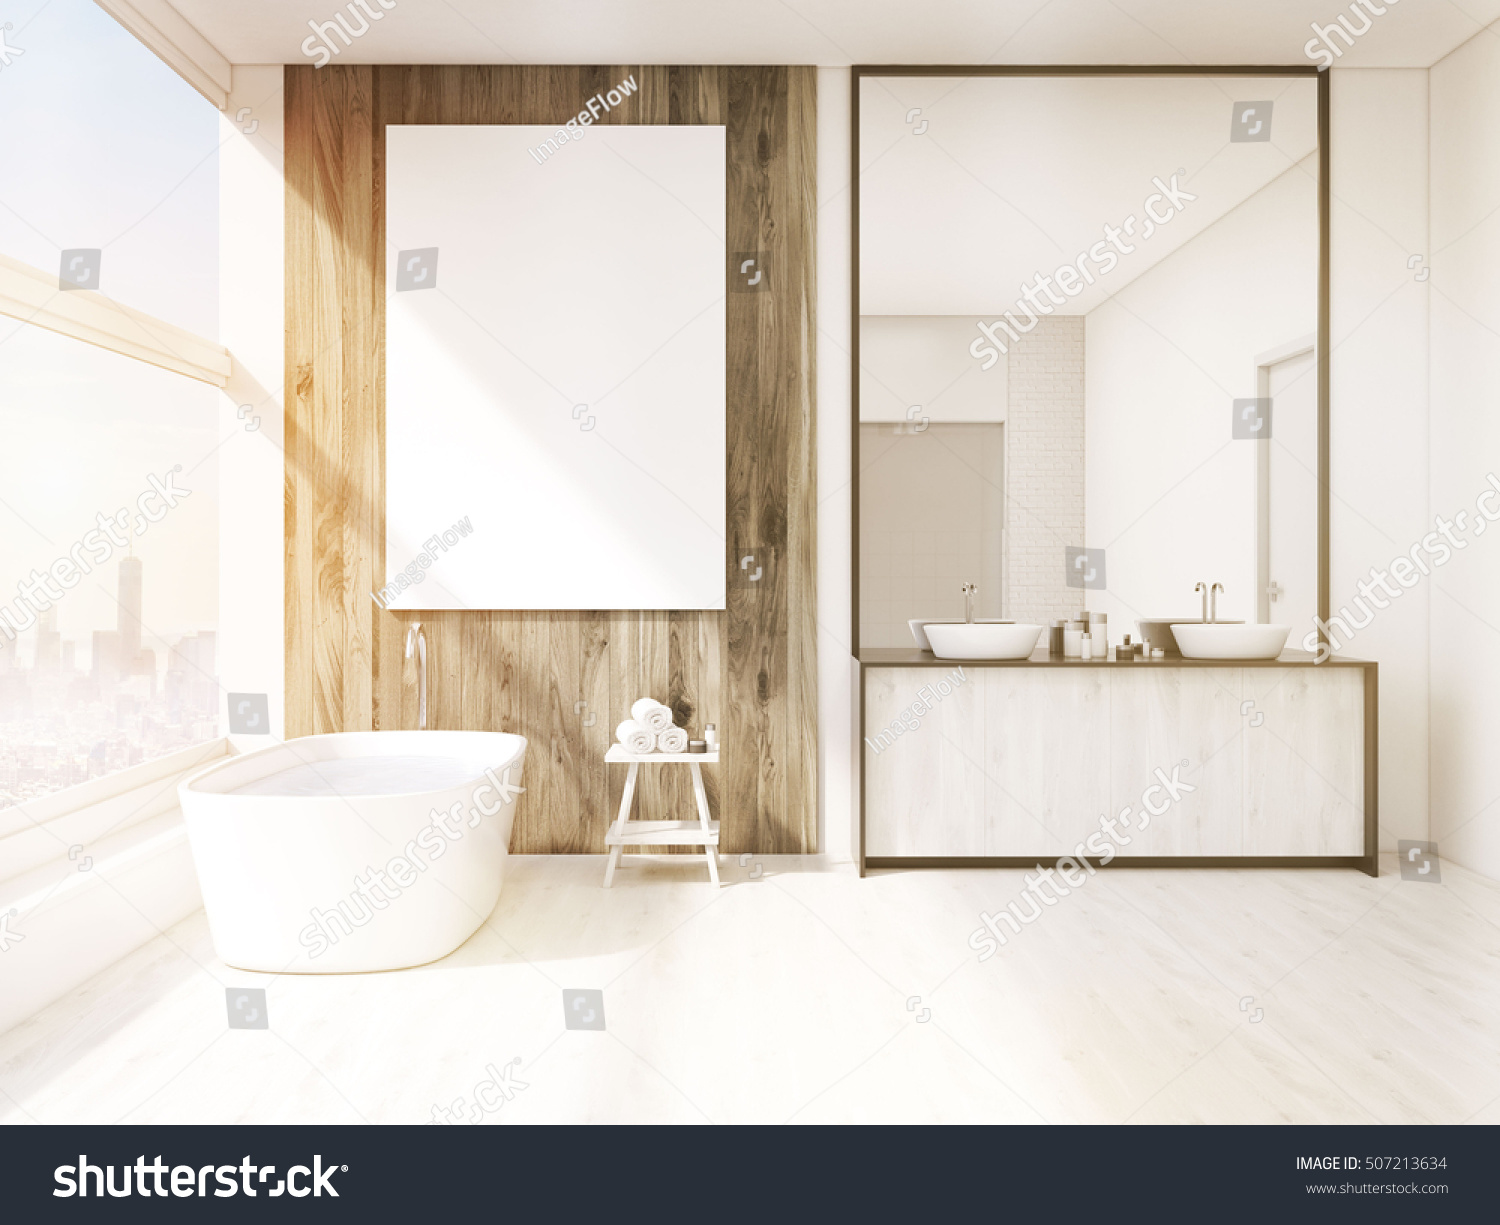 White bathroom interior with a white wooden floor, a window, a ...